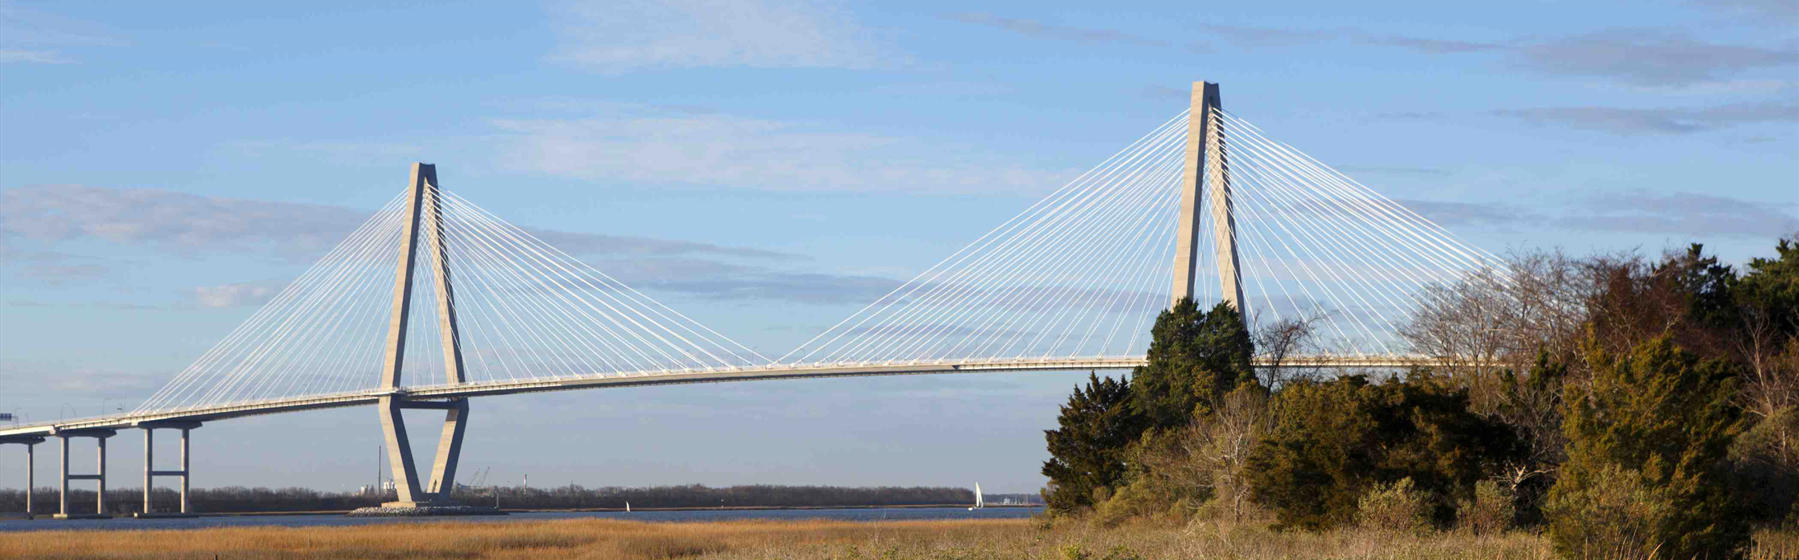 Cooper River Bridge | Mount Pleasant SC | Carolina Park Real Estate